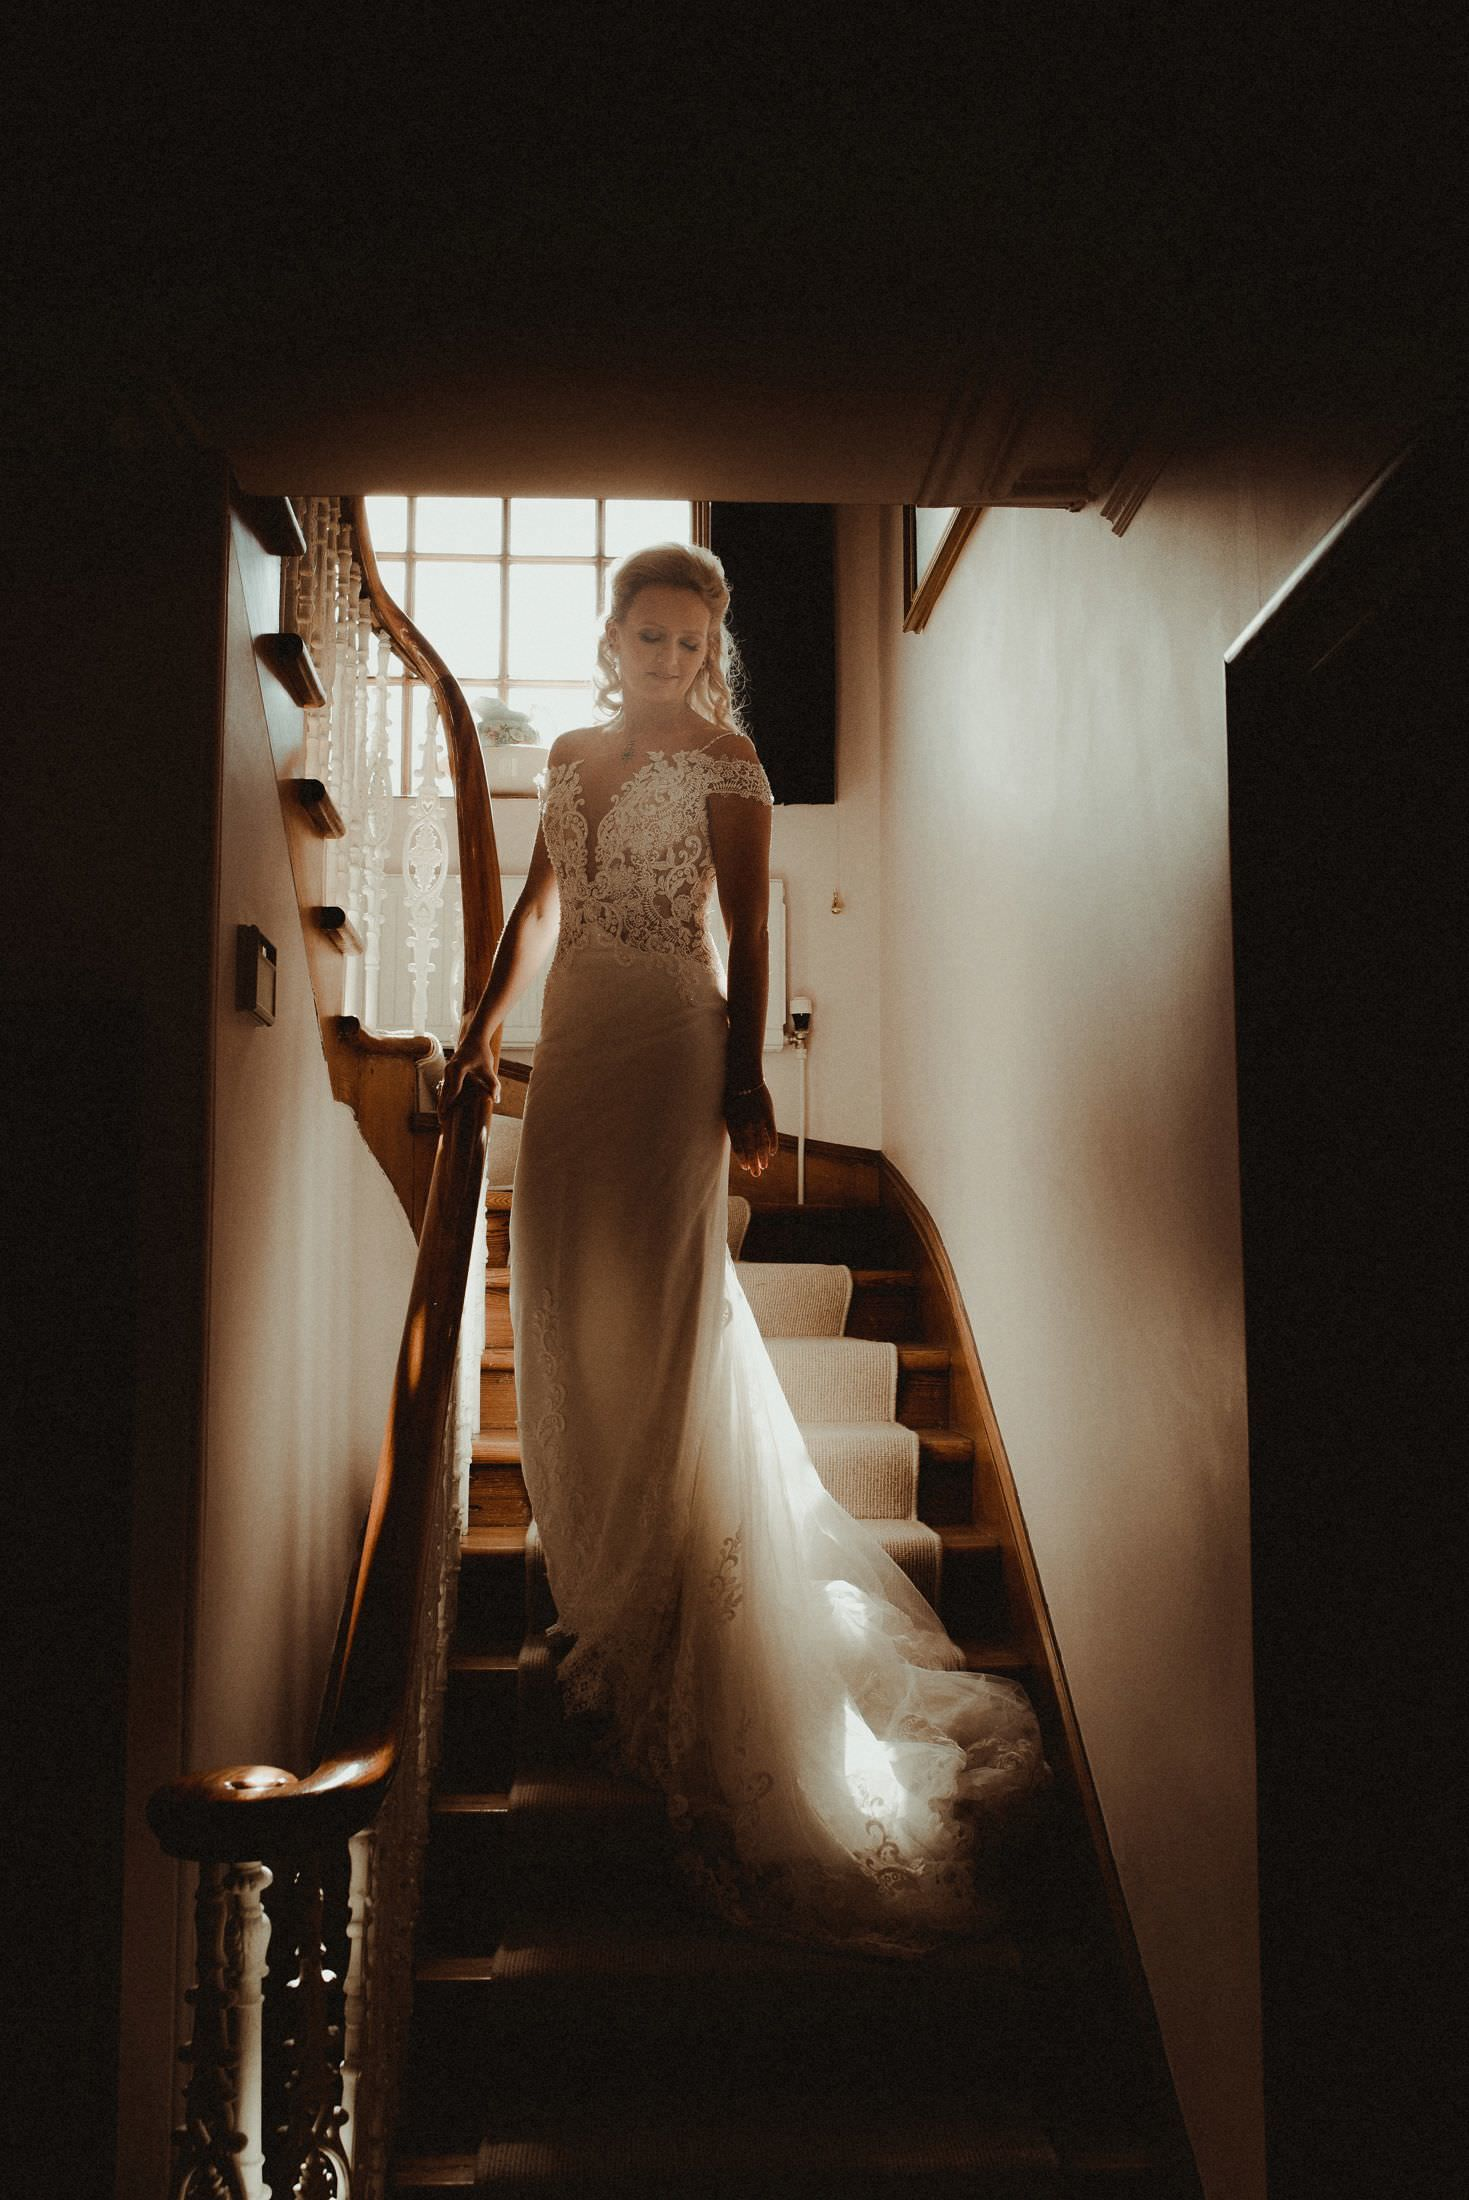 Bride walking down the stairs to go to her wedding at Elsick House